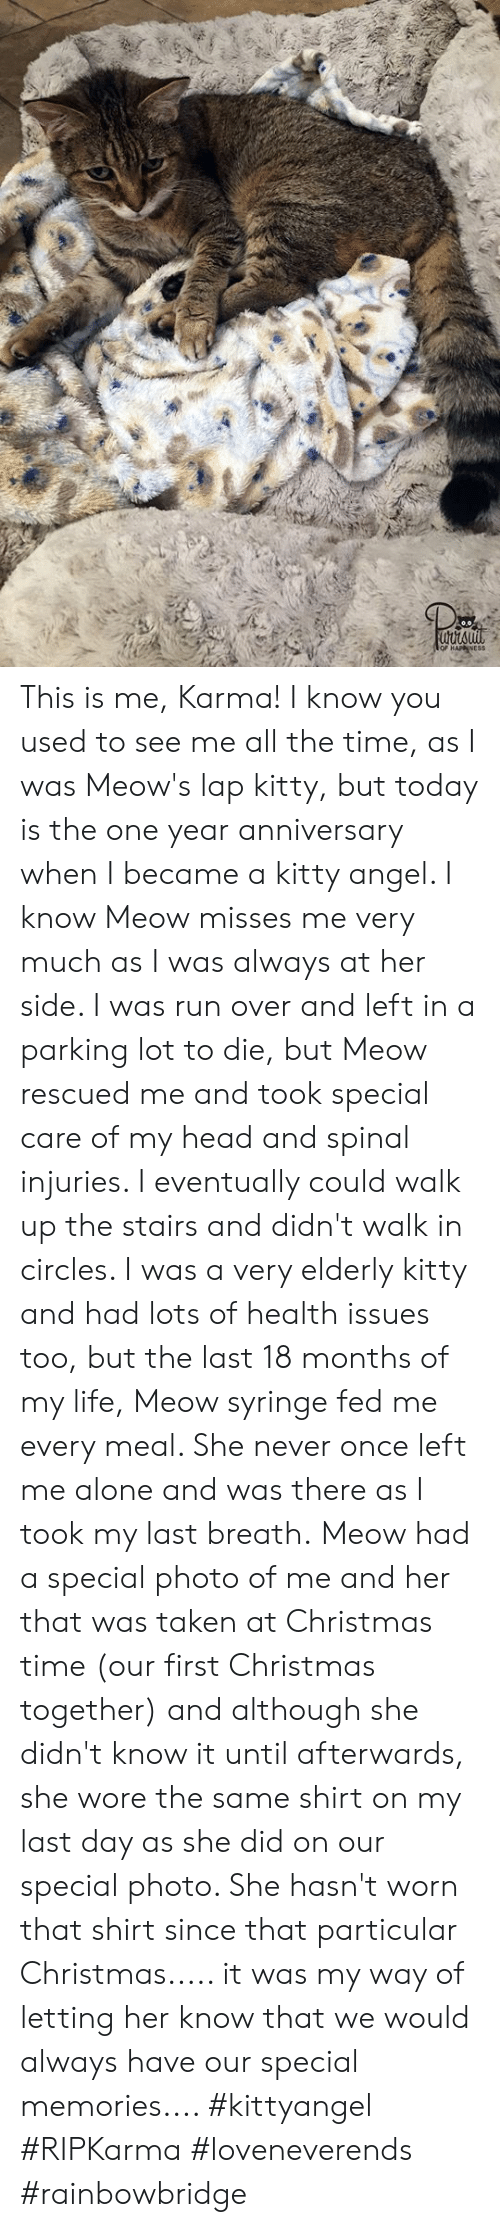 Being Alone, Christmas, and Head: This is me, Karma! I know you used to see me all the time, as I was Meow's lap kitty, but today is the one year anniversary when I became a kitty angel. I know Meow misses me very much as I was always at her side. I was run over and left in a parking lot to die, but Meow rescued me and took special care of my head and spinal injuries. I eventually could walk up the stairs and didn't walk in circles. I was a very elderly kitty and had lots of health issues too, but the last 18 months of my life, Meow syringe fed me every meal. She never once left me alone and was there as I took my last breath. Meow had a special photo of me and her that was taken at Christmas time (our first Christmas together) and although she didn't know it until afterwards, she wore the same shirt on my last day as she did on our special photo. She hasn't worn that shirt since that particular Christmas..... it was my way of letting her know that we would always have our special memories.... #kittyangel #RIPKarma #loveneverends #rainbowbridge